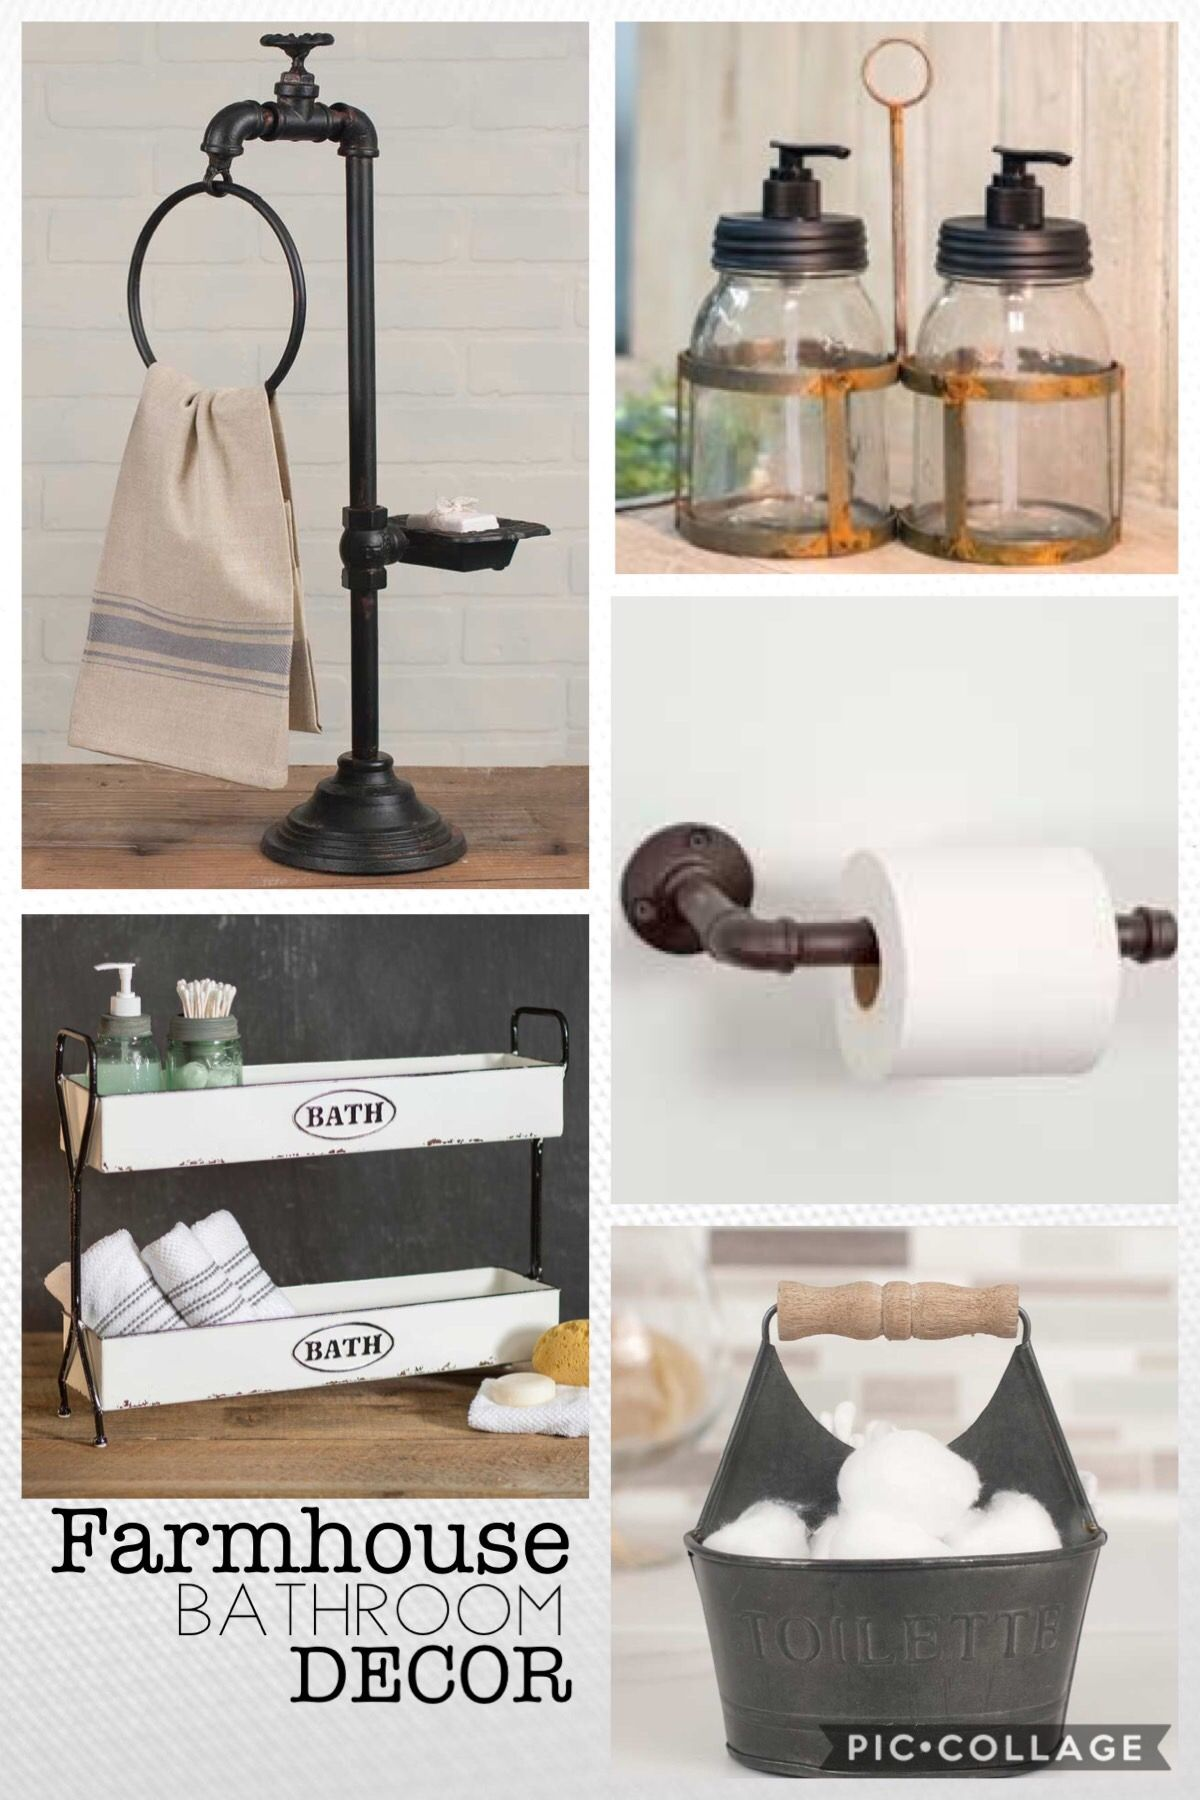 Farmhouse bathroom decor industrial rustic country towel holder caddy toilet paper holder